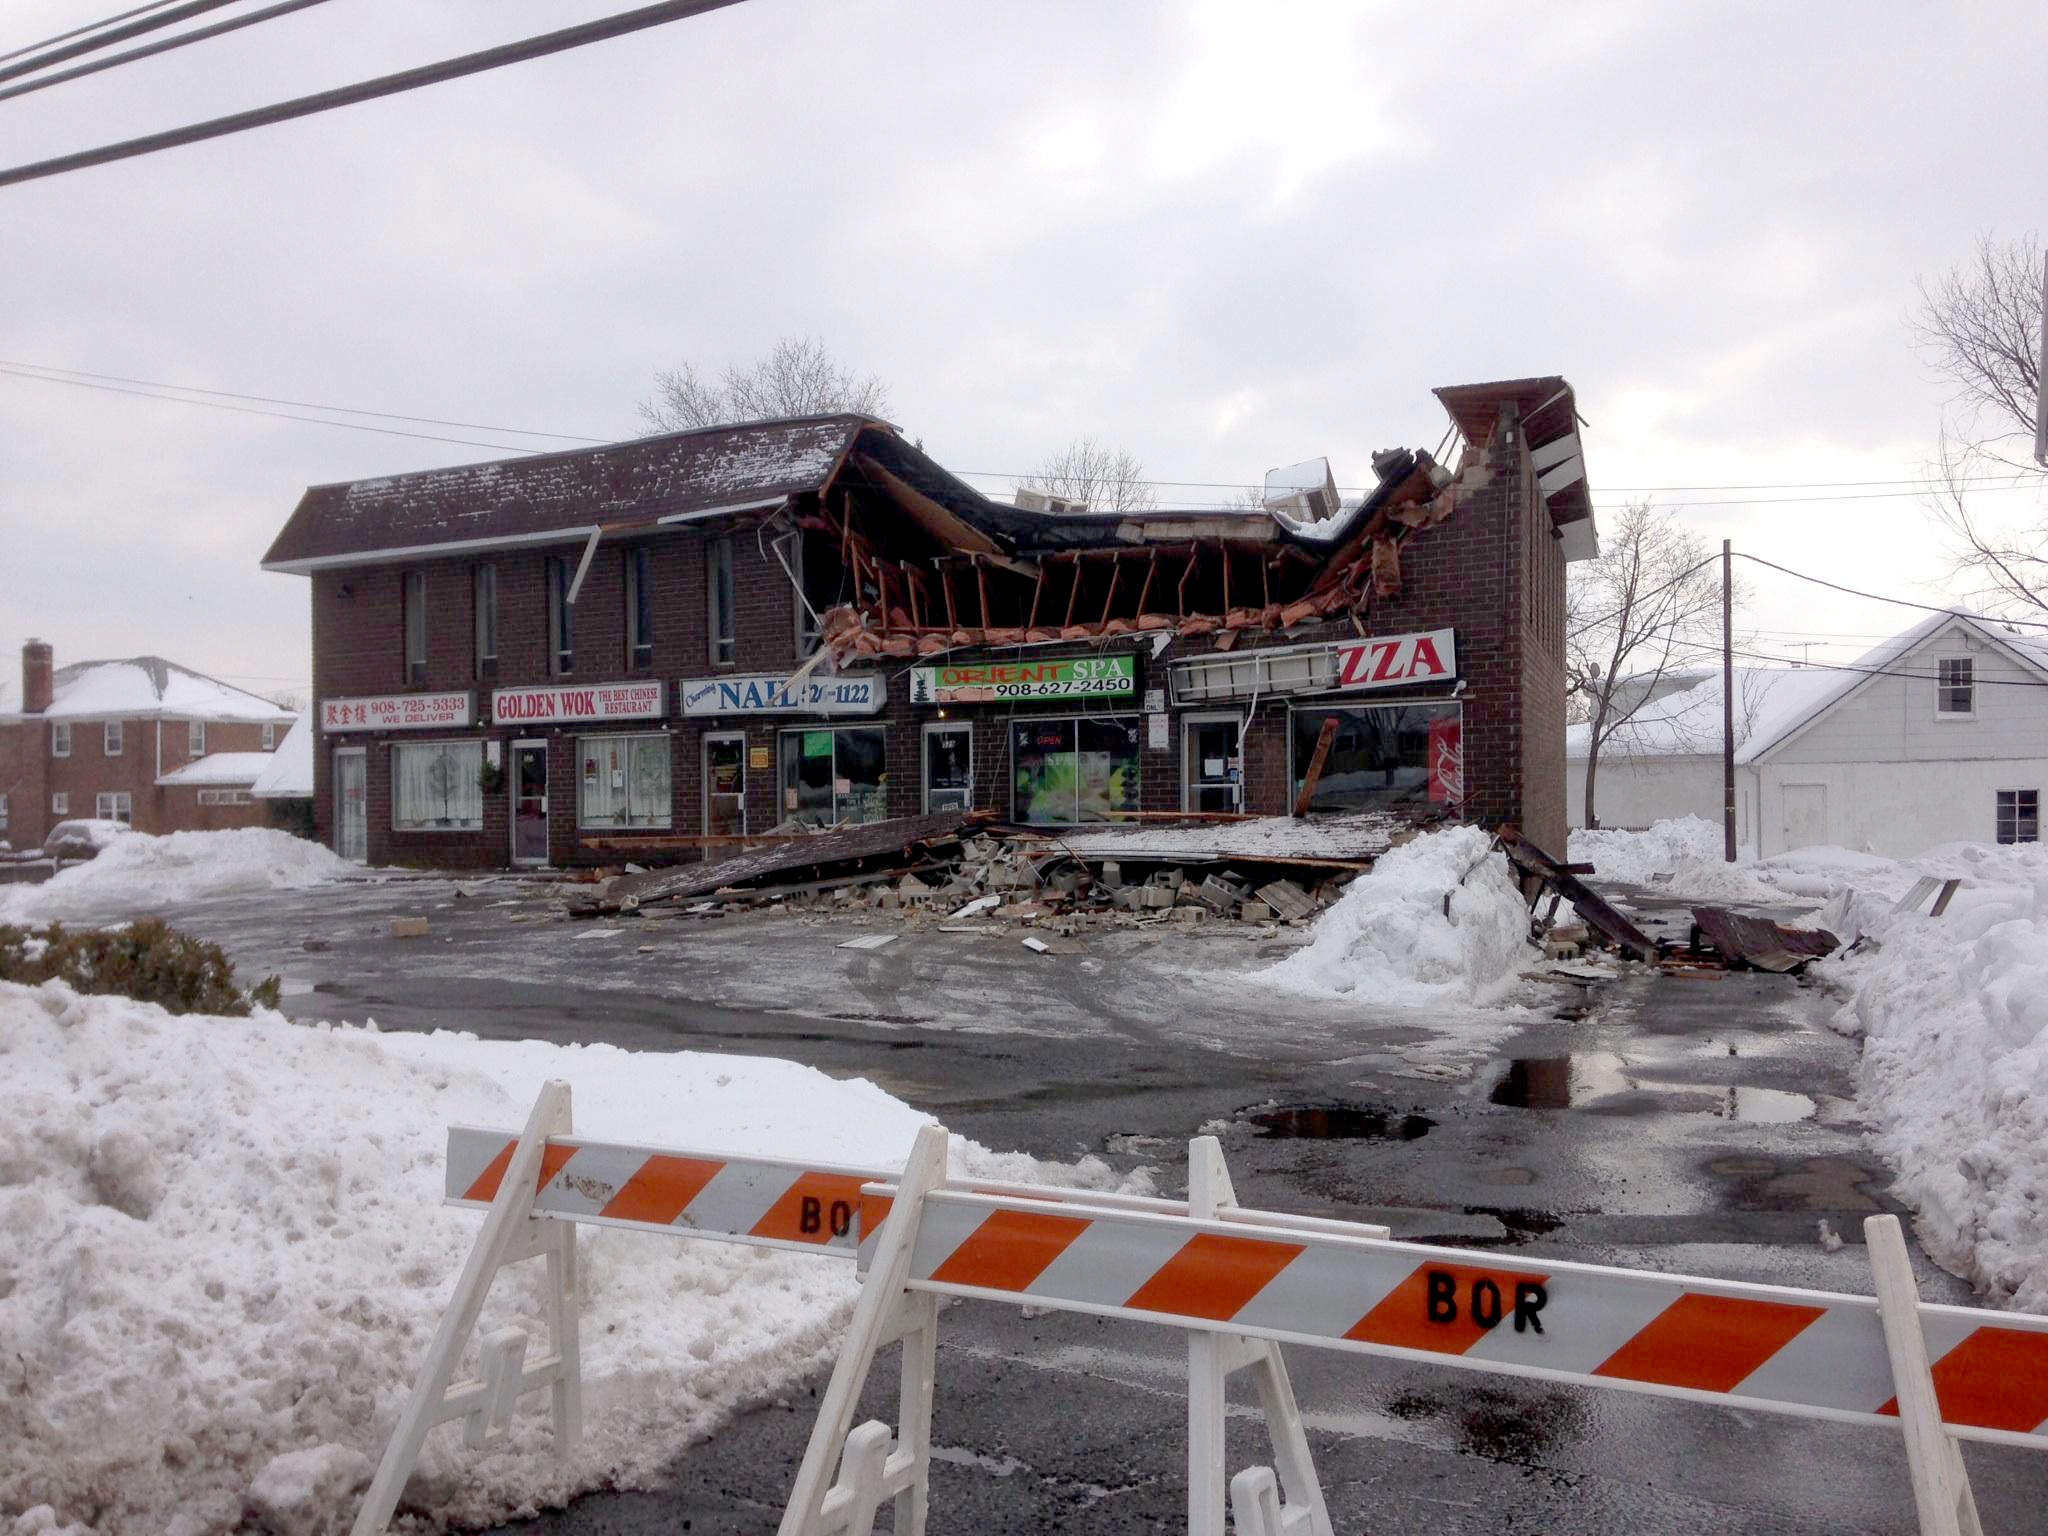 Building on Route 202 to be Demolished After Roof Collapsed 2 Years ...